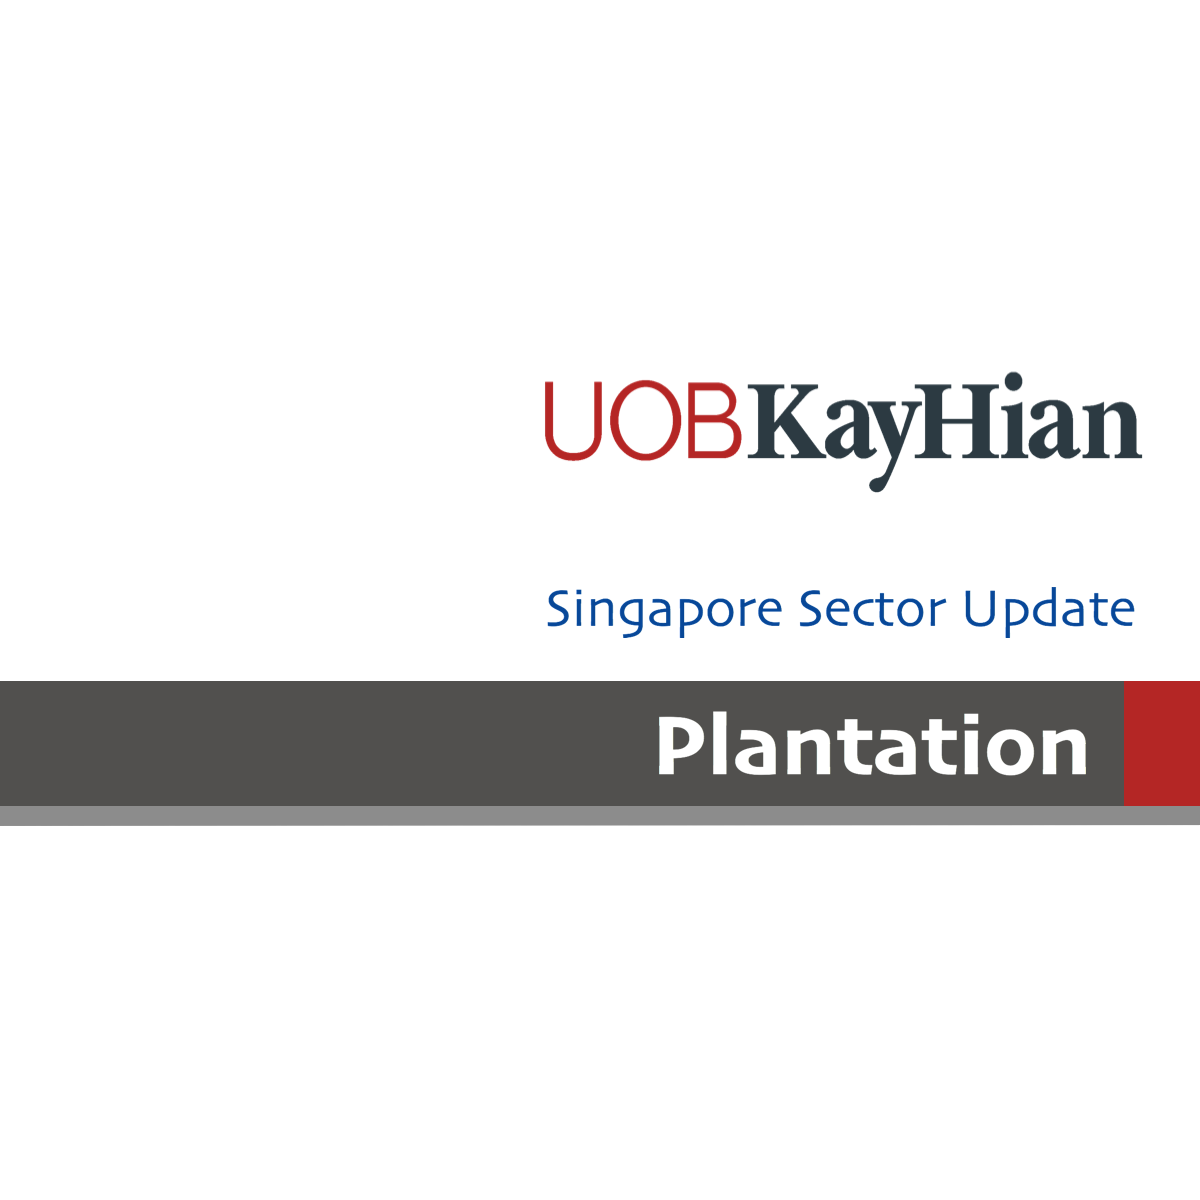 Plantation – Singapore - UOB Kay Hian 2018-03-26: Consequences If China Restricts Soybean Imports From The US